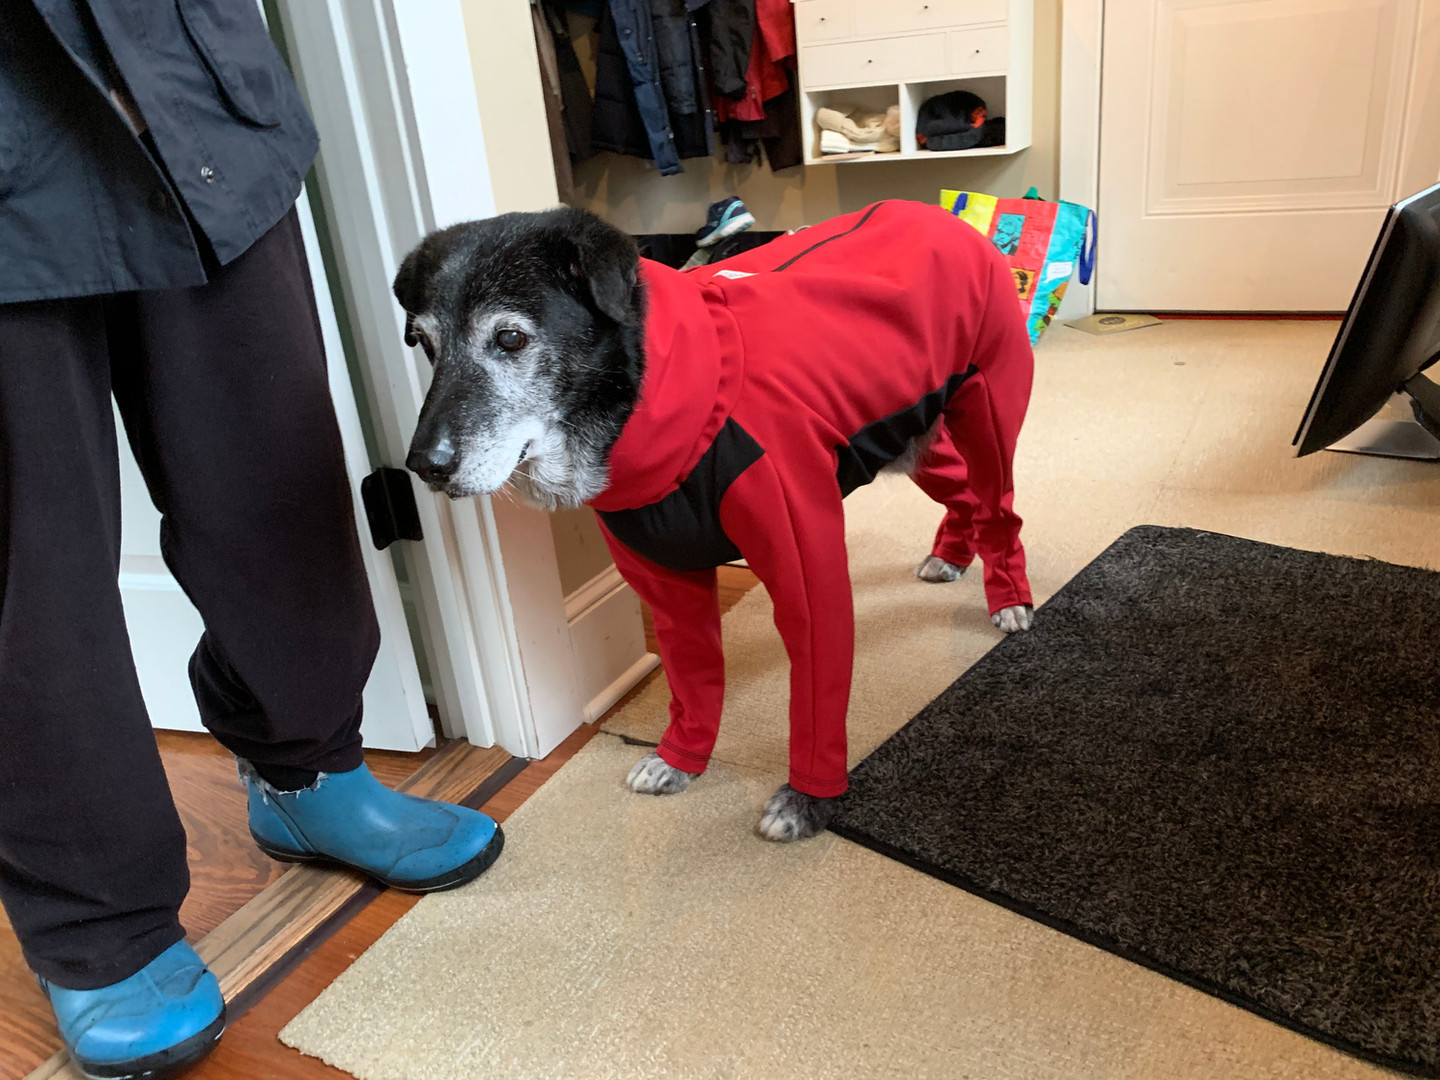 Winter in his insulated long sleeve dog jacket